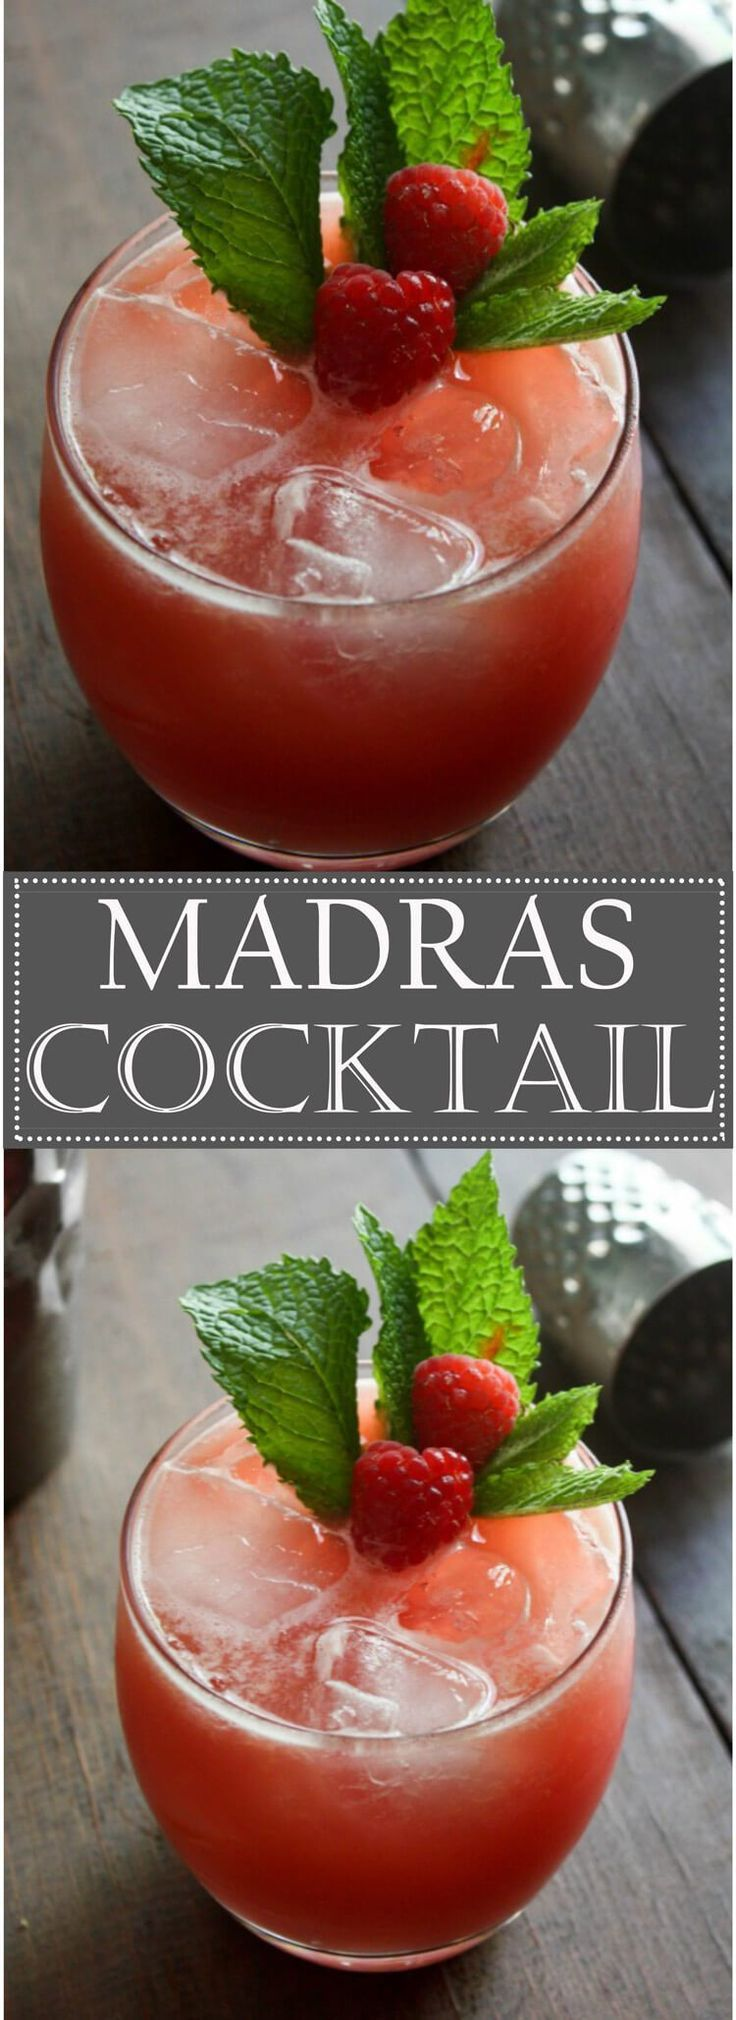 The Madras Cocktail is a blend of Vodka, Orange Juice and Cranberry Cocktail Juice. This sweet mix of flavors is perfect for Summer.